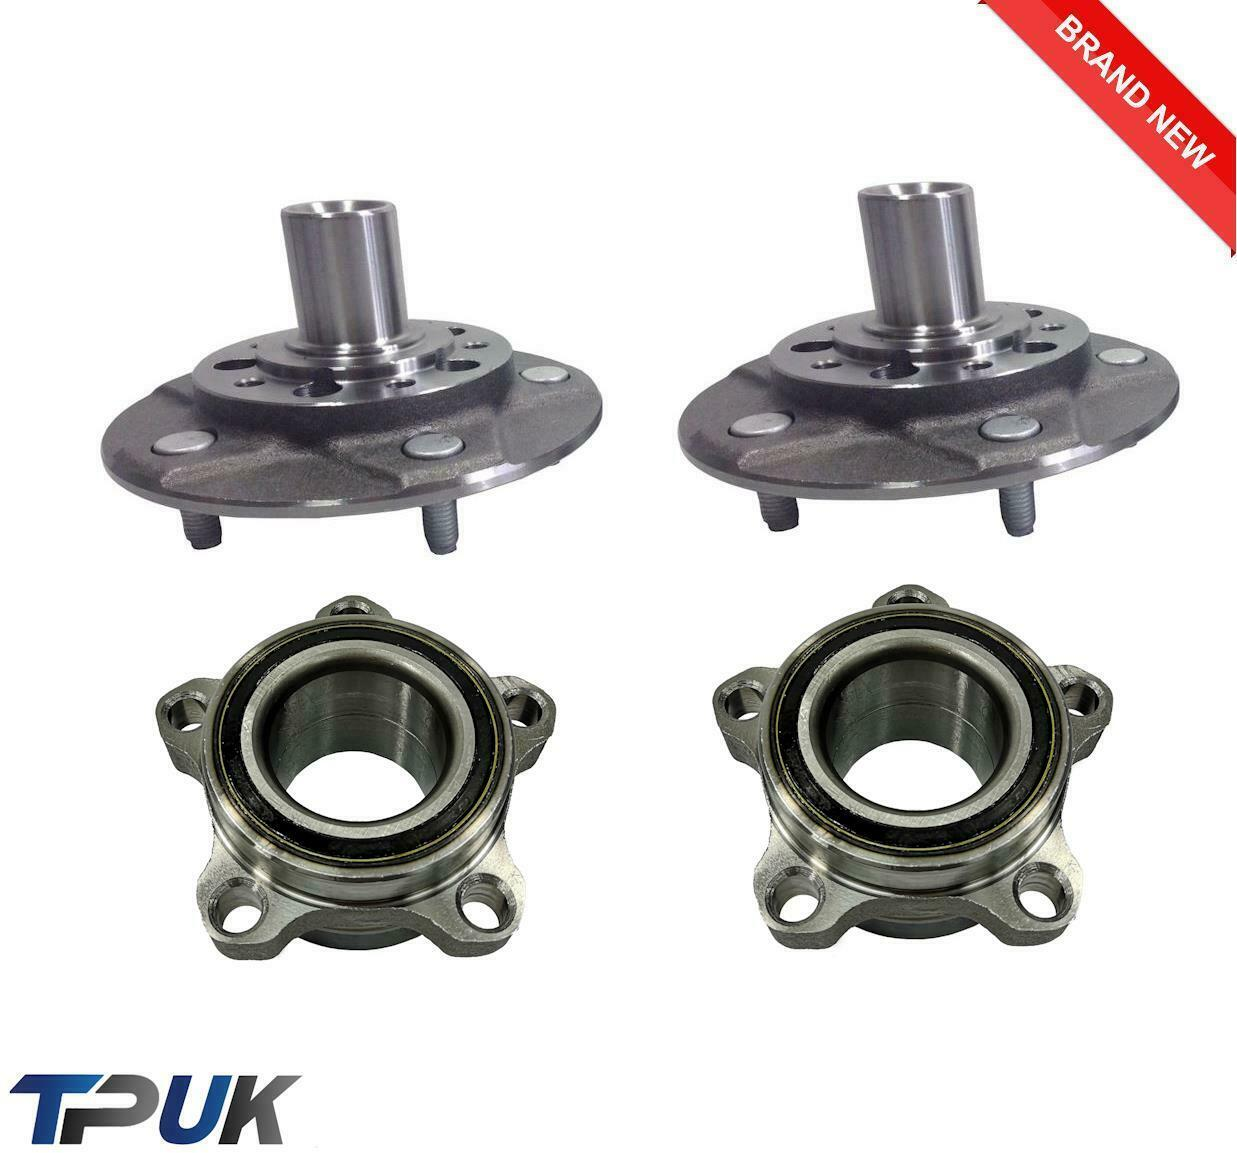 FRONT HUB FORD TRANSIT MK7 2006 ONWARD WITH SINGLE REAR WHEEL BRAND NEW